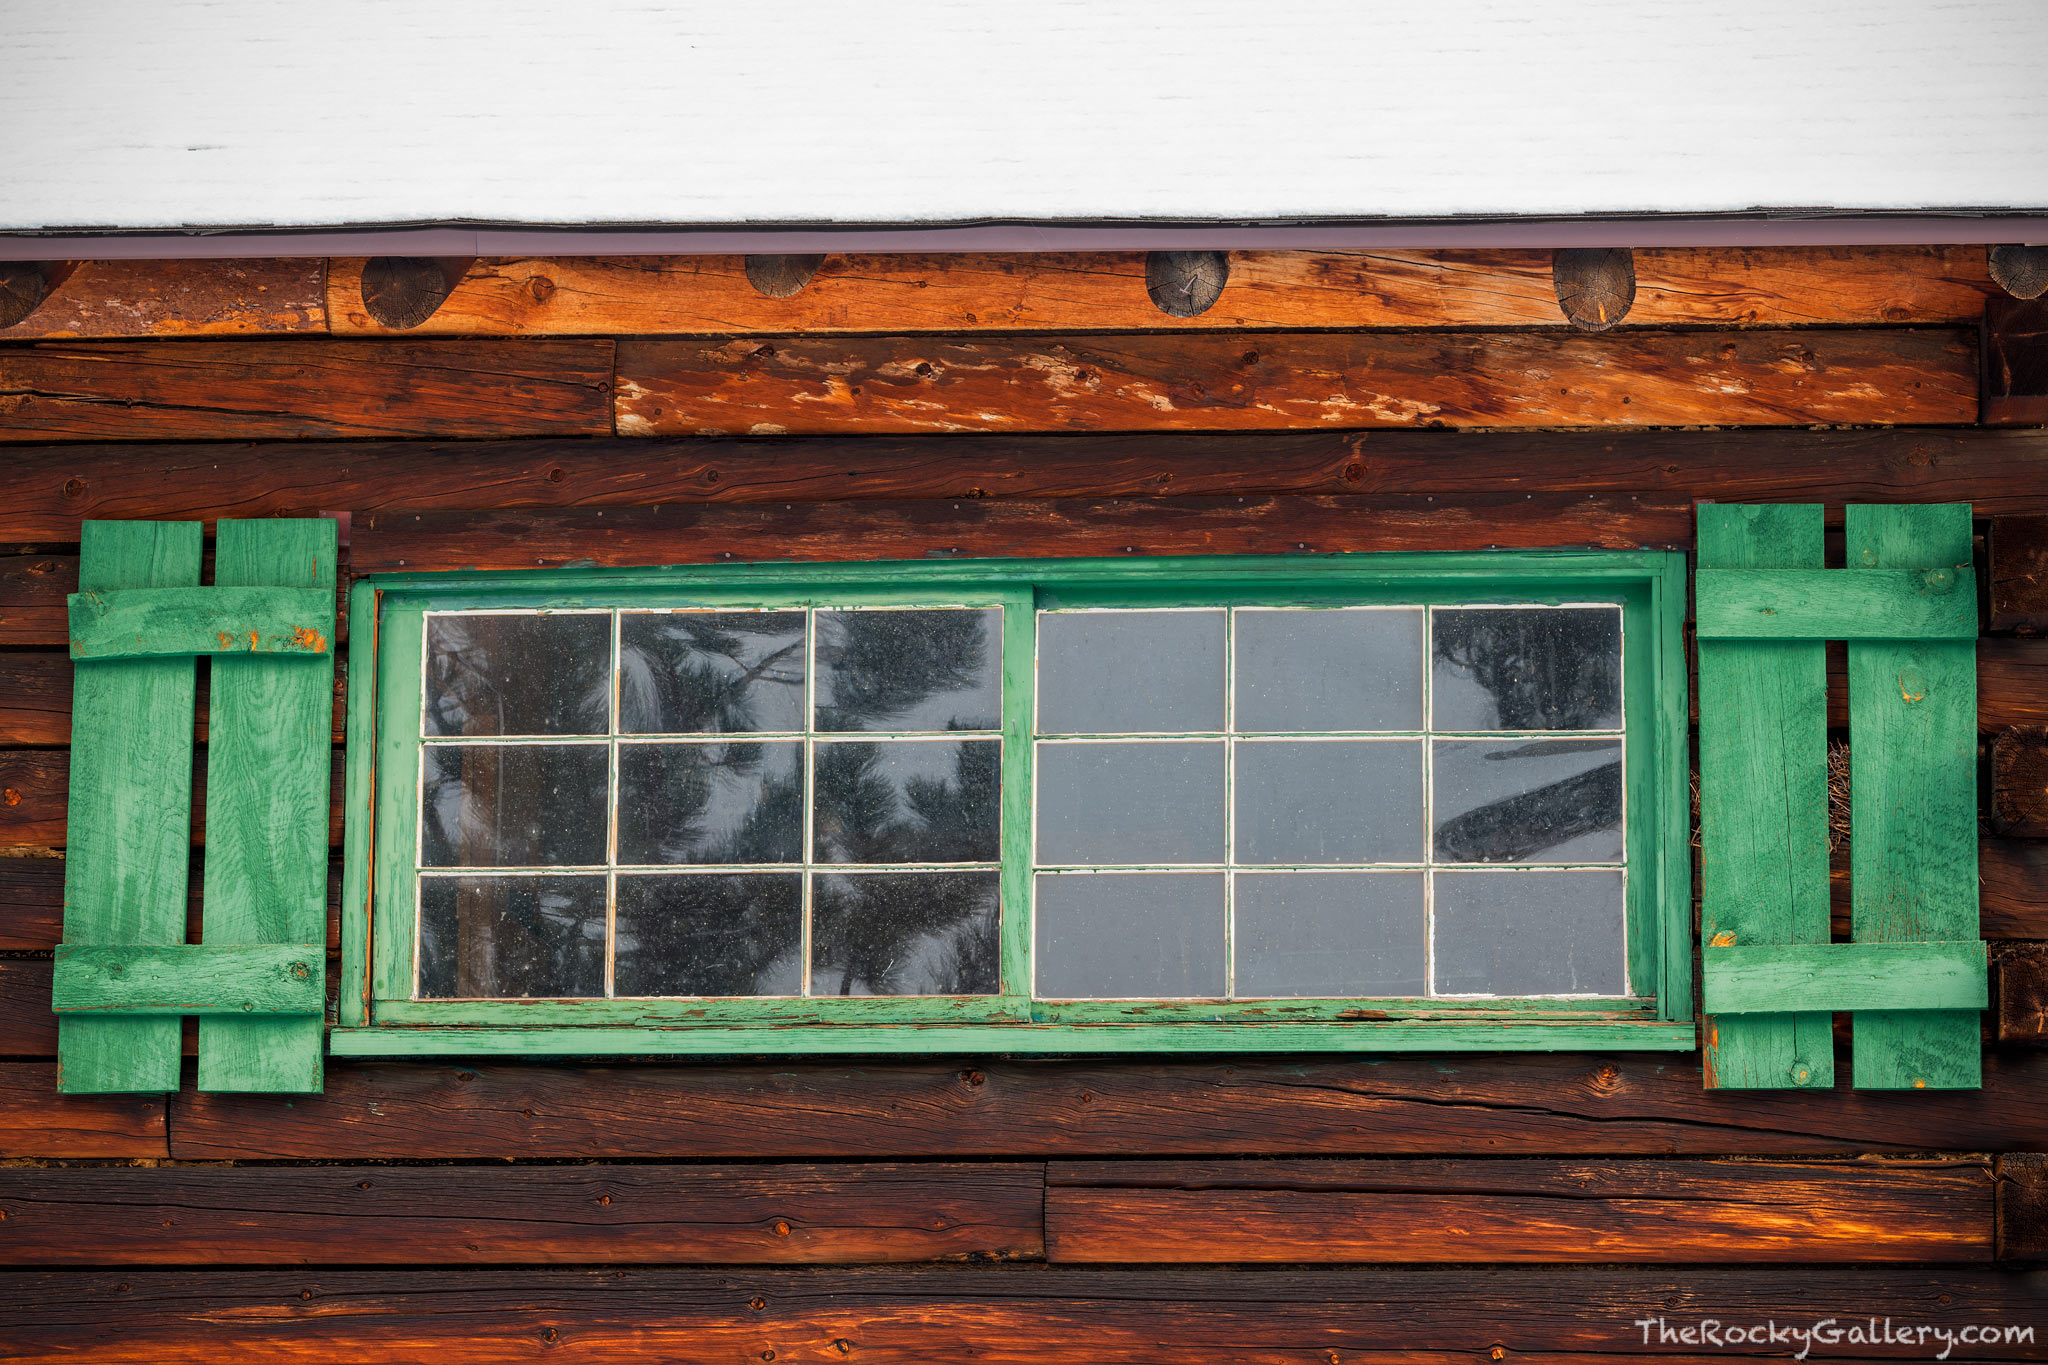 Moraine Park,Cabin,RMNP,Bear Lake Road,Windows,Man Made,Estes Park,Colorado,RMNP,Rocky Mountain National Park,Landscape,Photography, photo